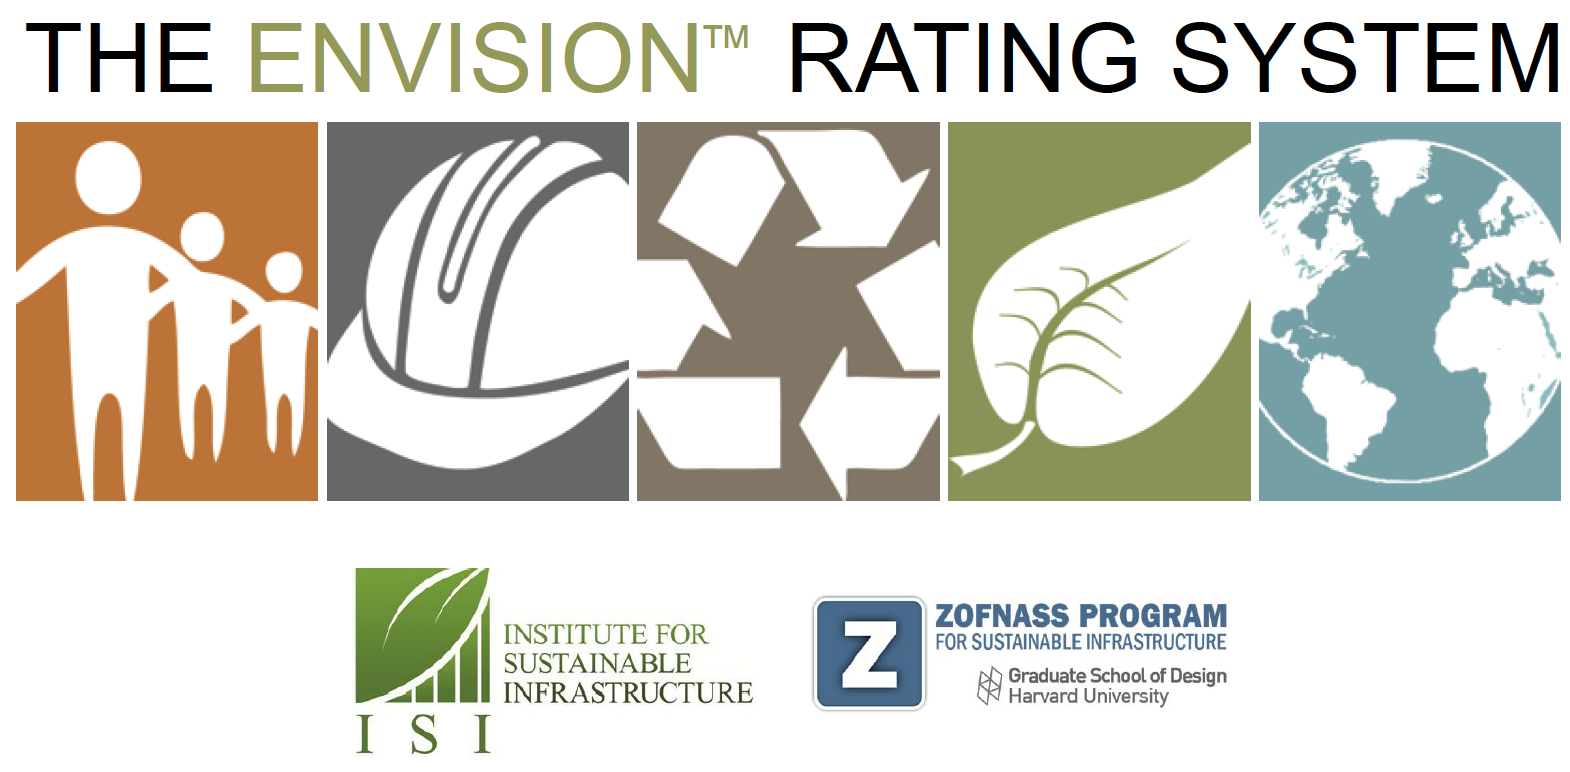 Isi Envision Sustainable Infrastructure Rating System